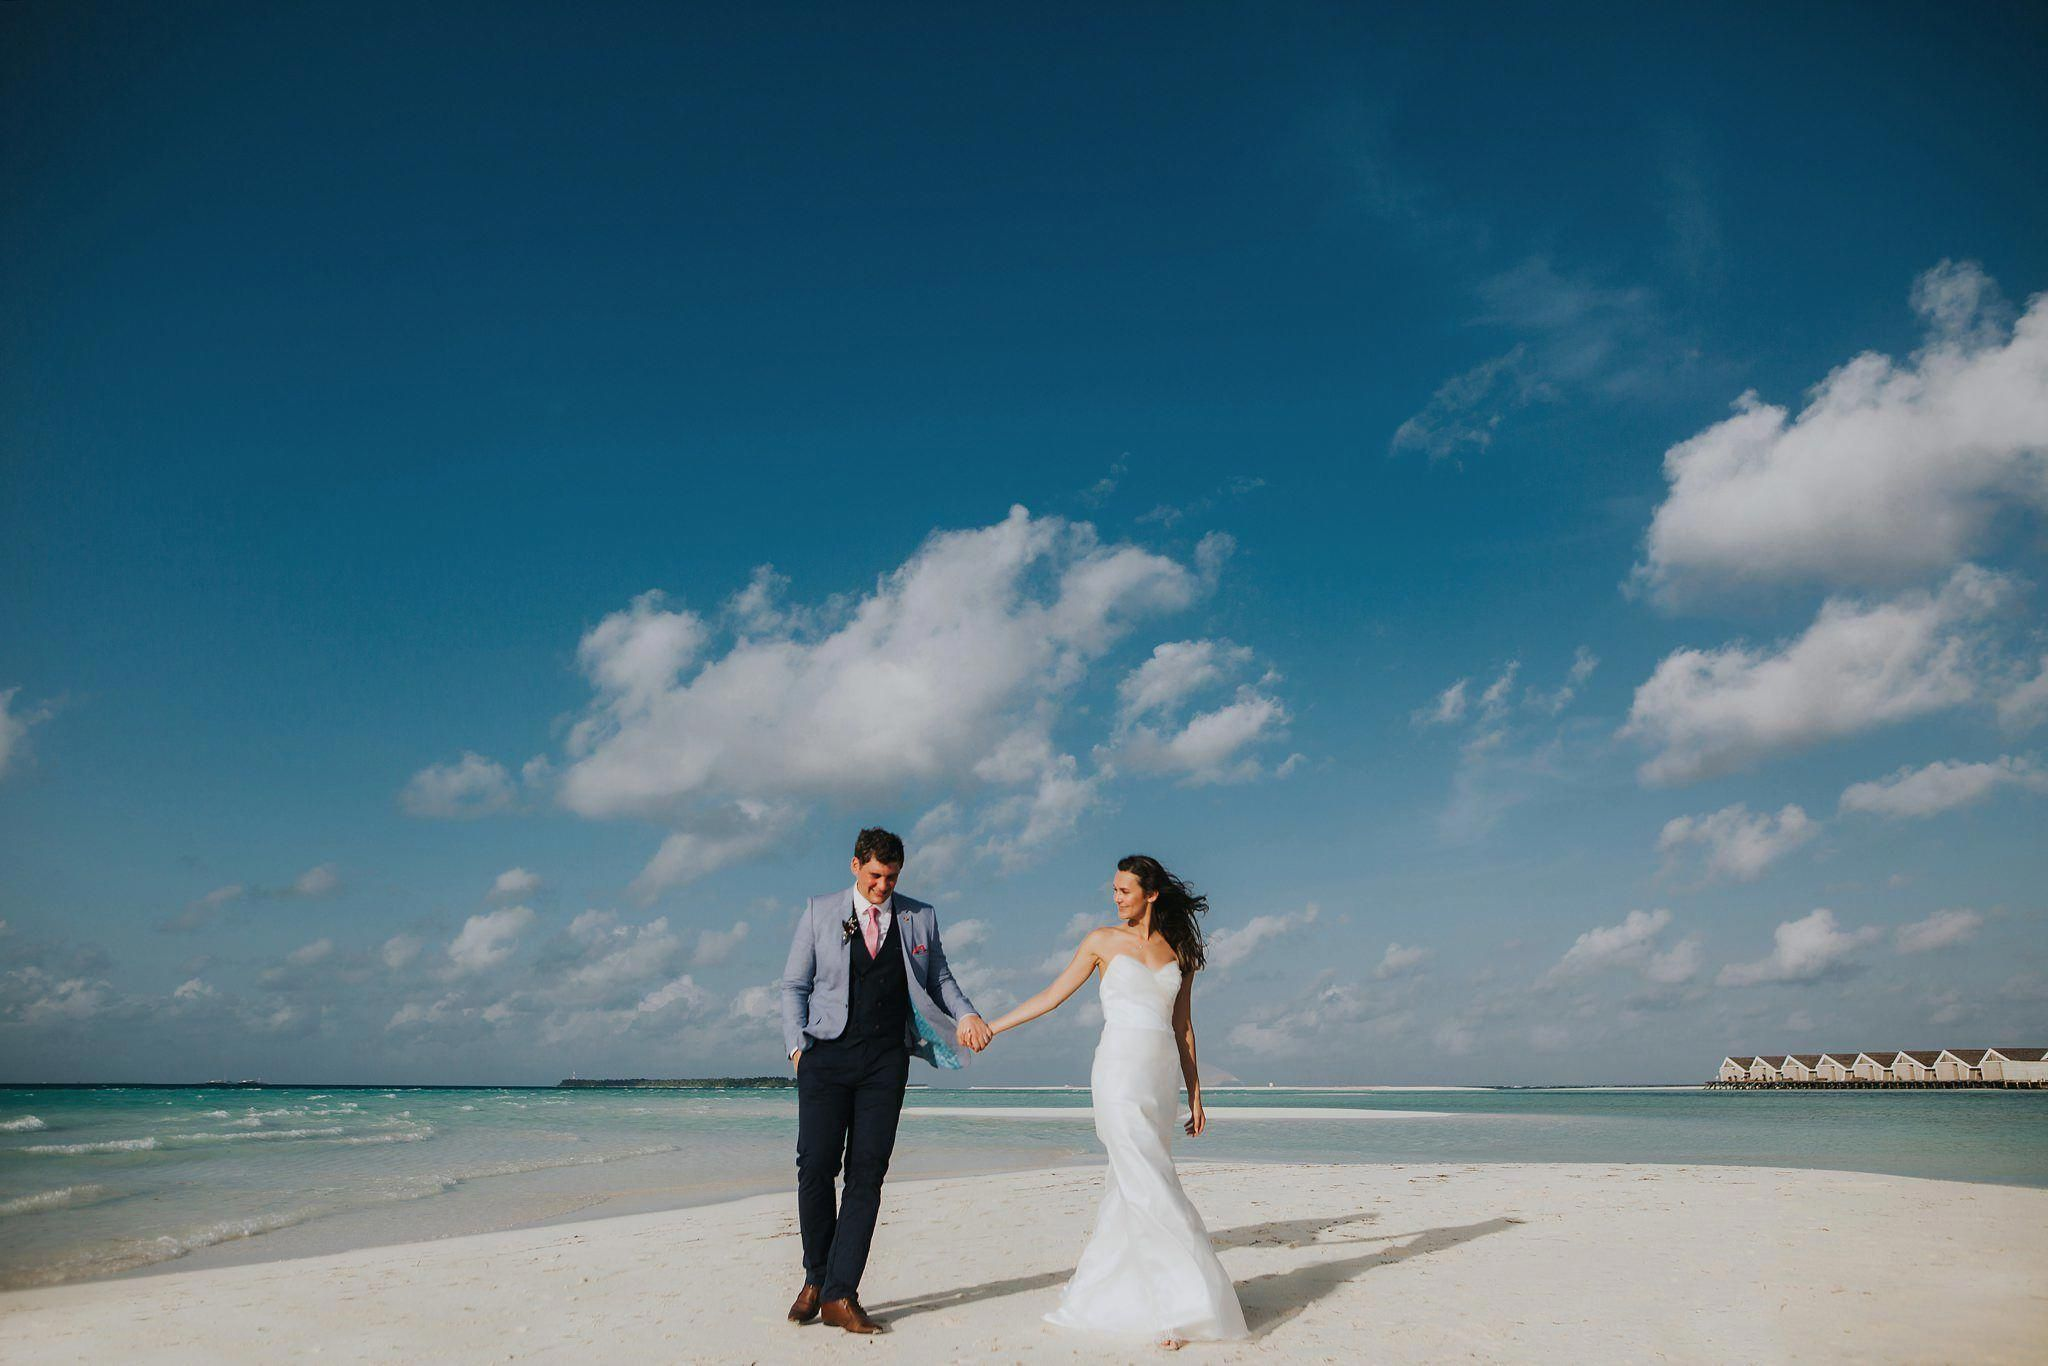 Wedding Rings Costco Beach Wedding Ideas In 2019 Maldives